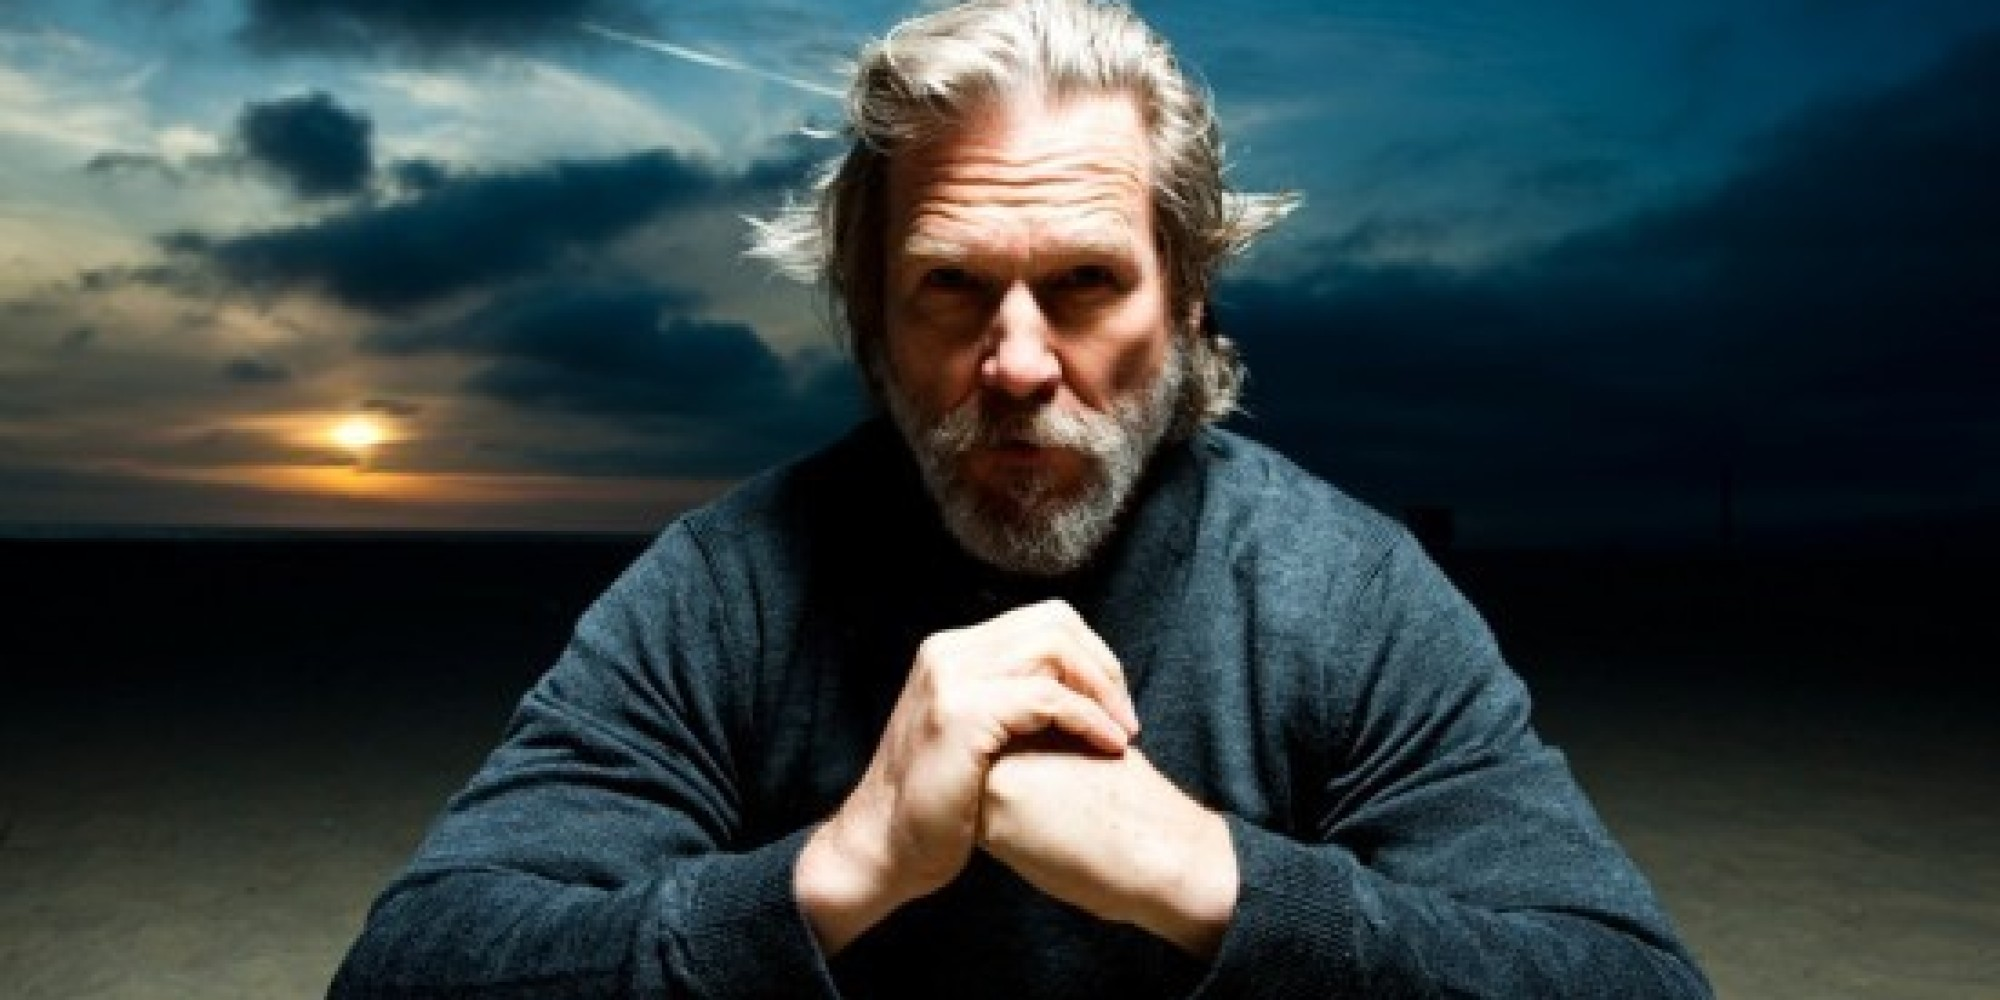 Jeff Bridges Wallpaper 6   2000 X 1000 stmednet 2000x1000